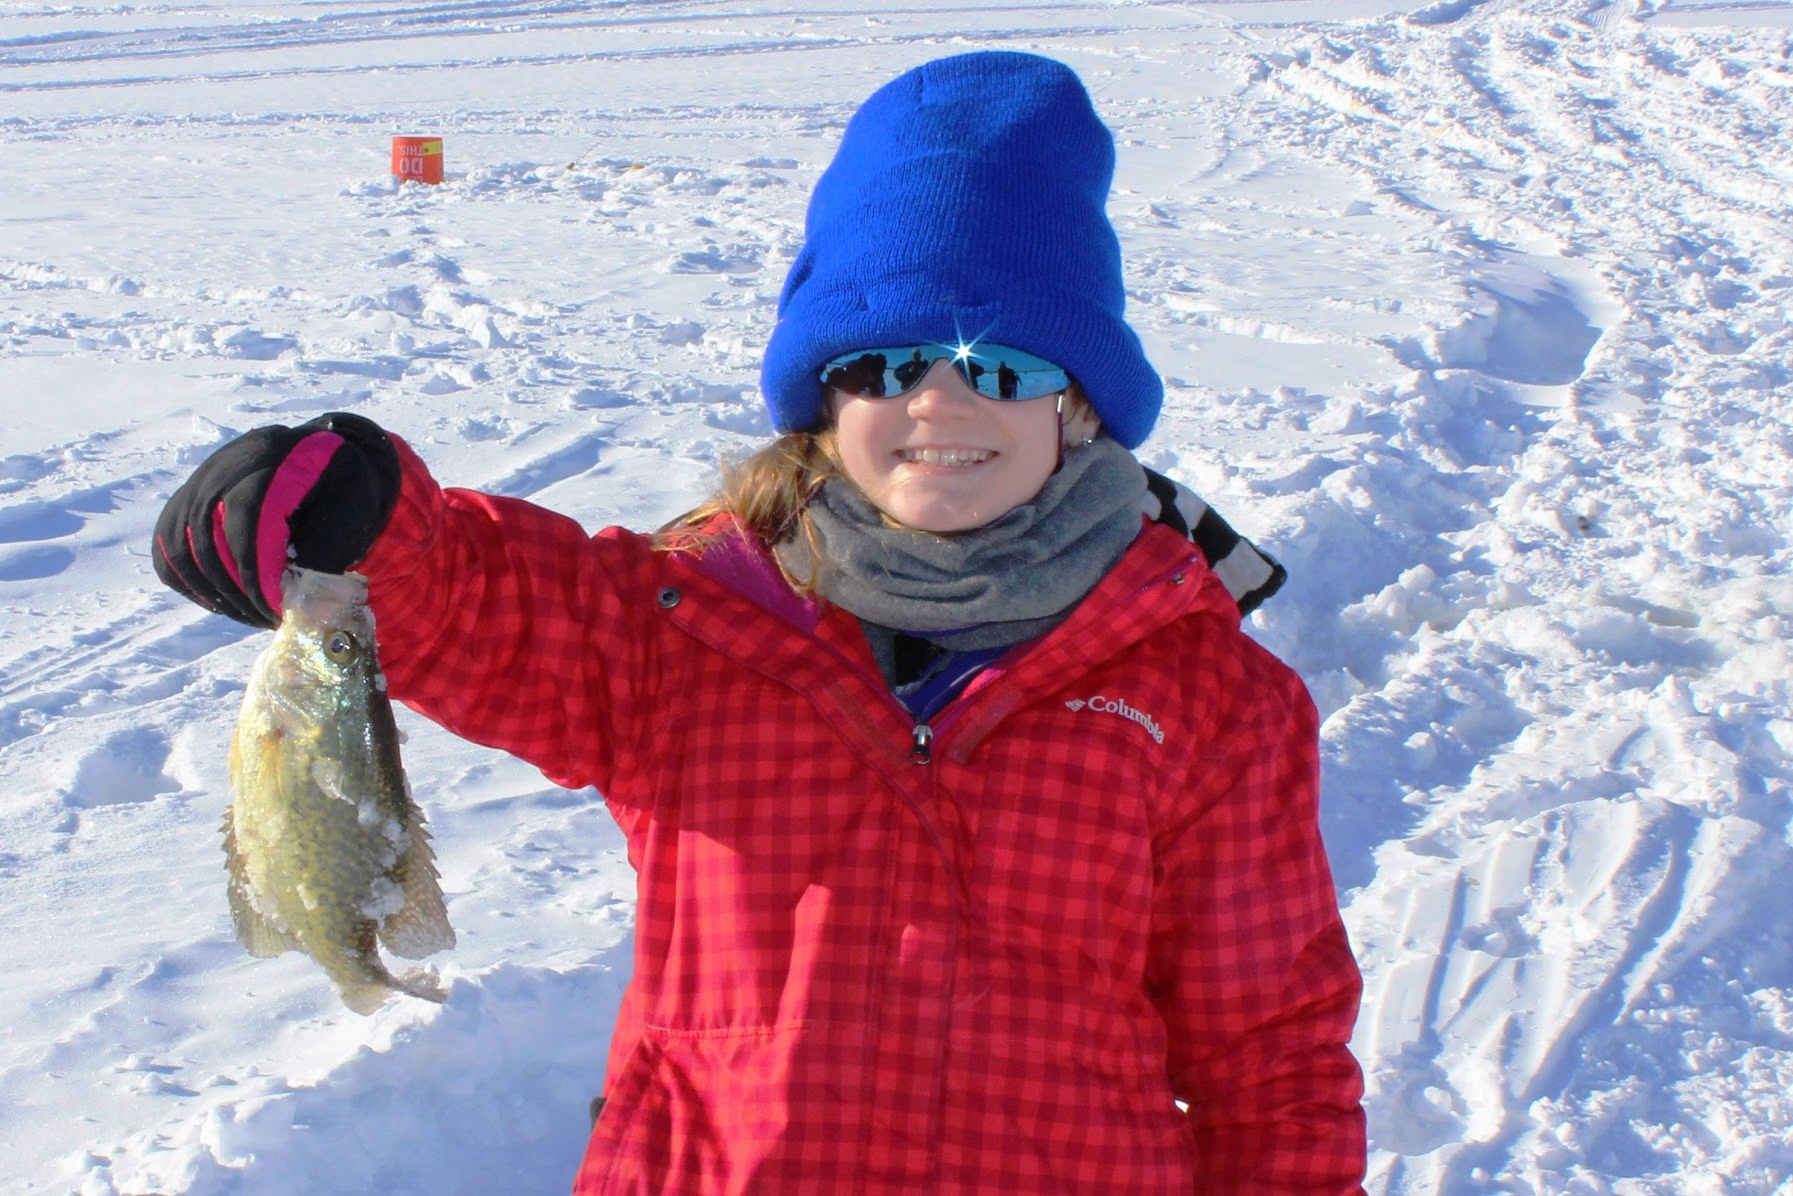 In a red coat and blue hat, a young girl holds up a fish she caught from an ice-covered lake.